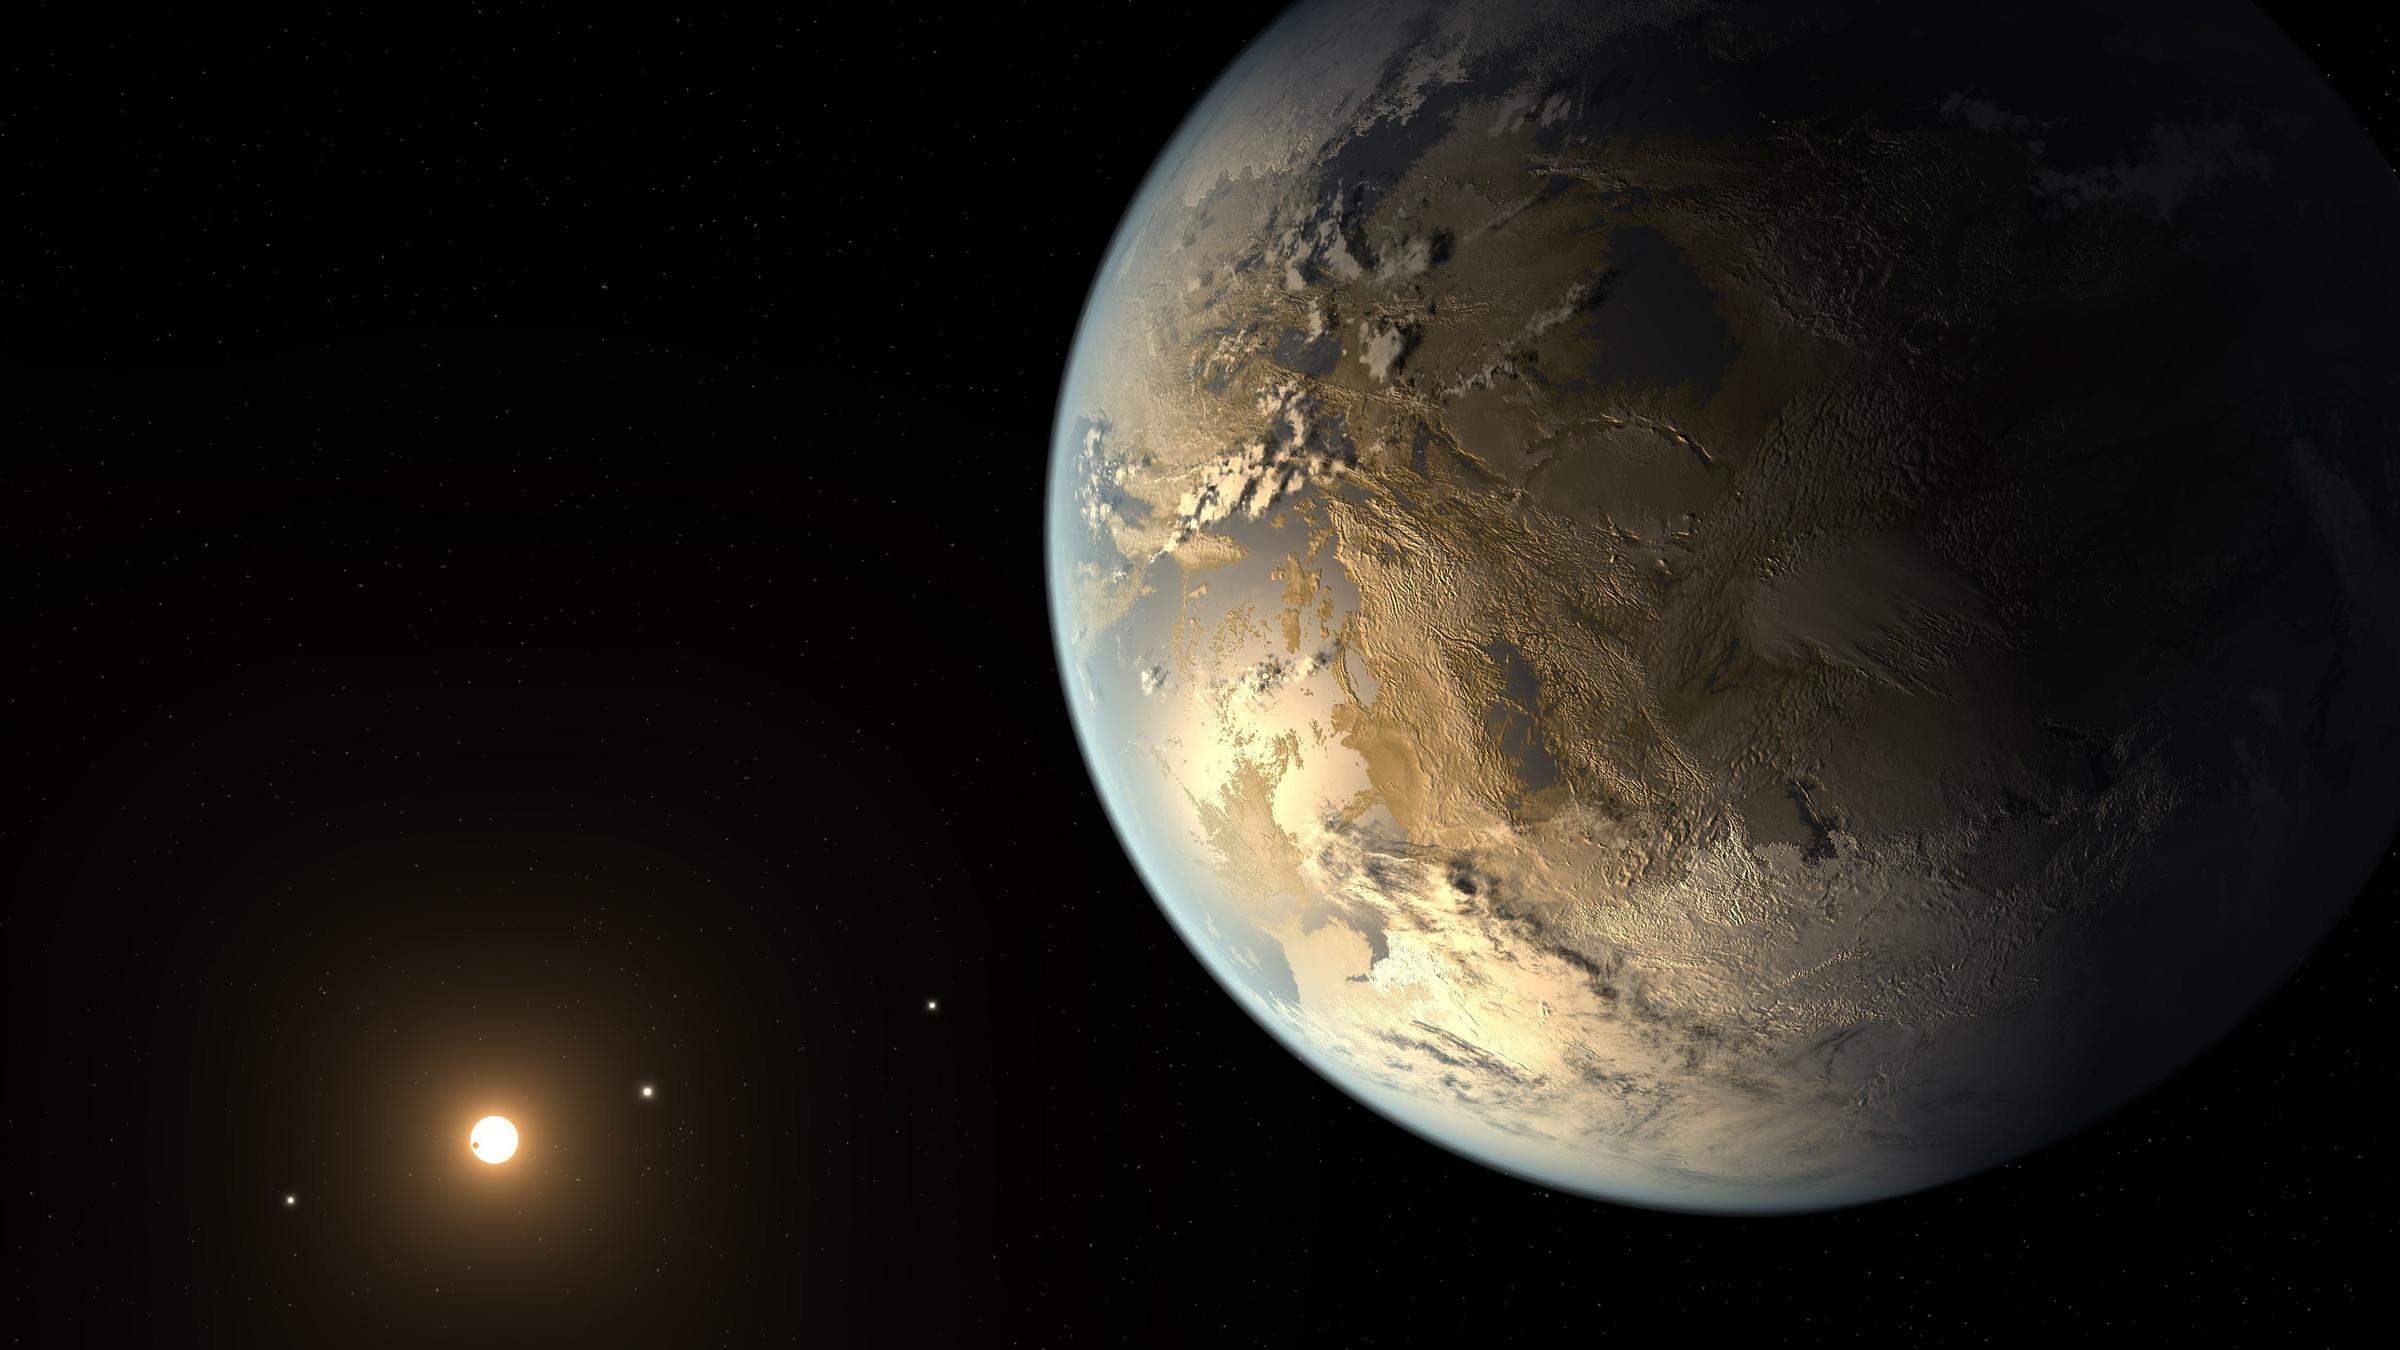 After 9 Years In Orbit, Kepler Telescope Leaves A Legacy Of Discovery